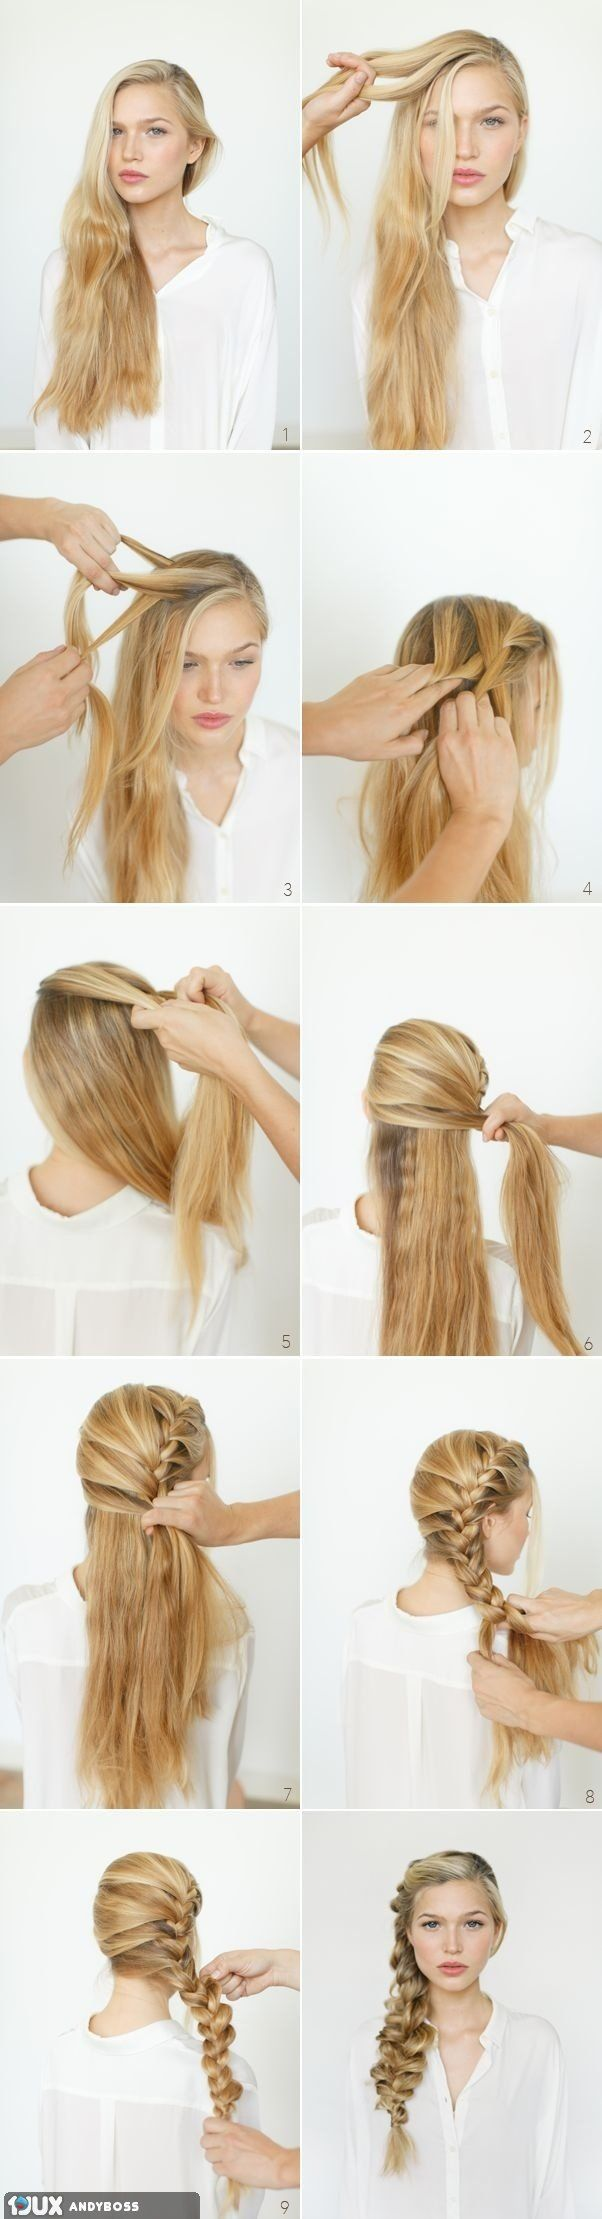 6762 best Hairstyles images on Pinterest | Hair dos, Hairstyle ideas ...